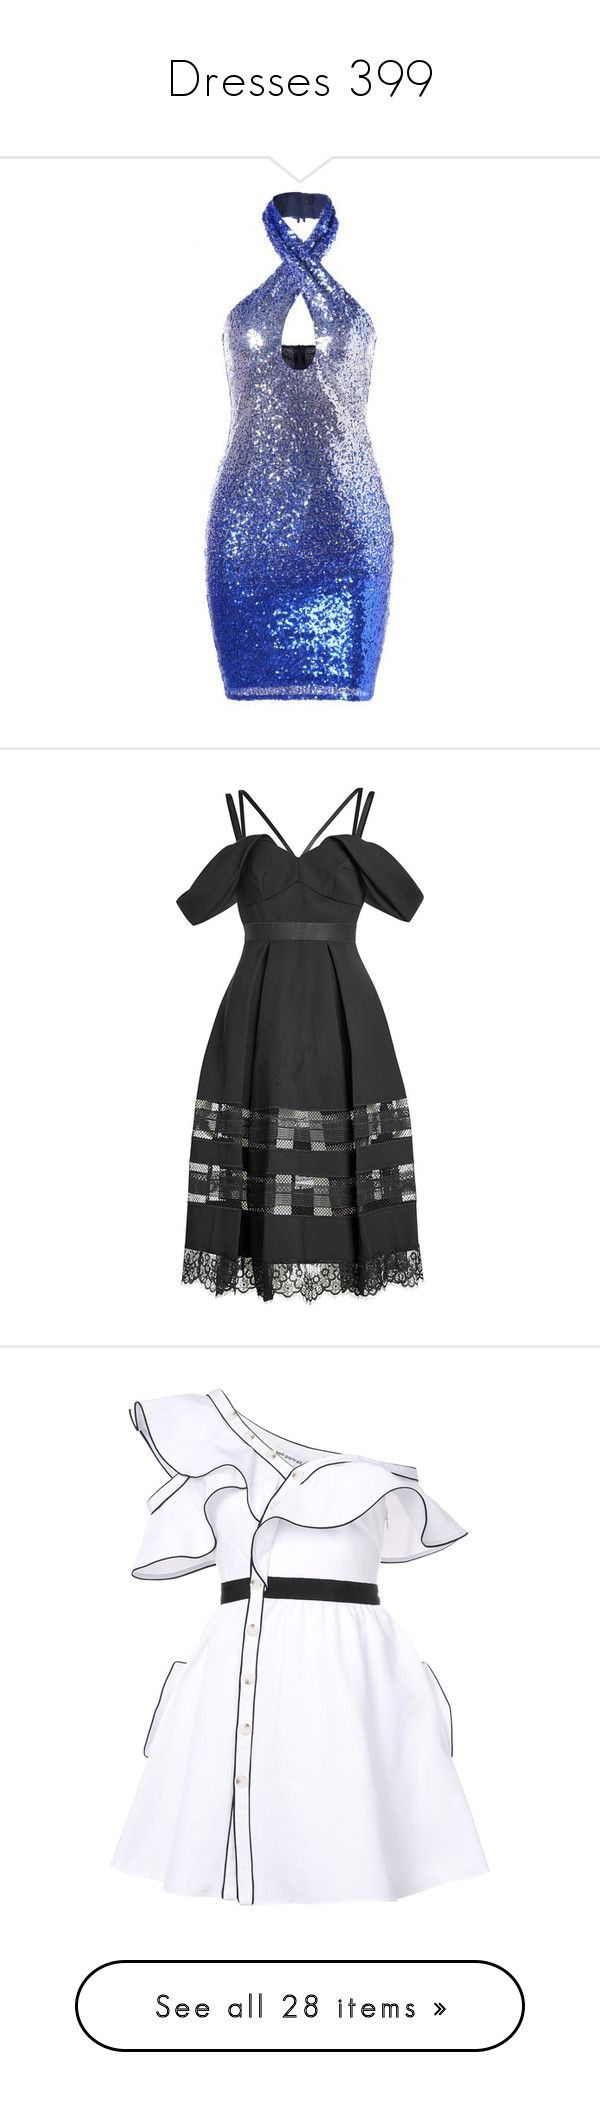 """""""Dresses 399"""" by singlemom ❤ liked on Polyvore featuring dresses, short white cocktail dress, white sequin cocktail dress, sequin mini dress, halter tops, blue cocktail dresses, black, scalloped dress, scalloped edge dress and fit flare dress"""